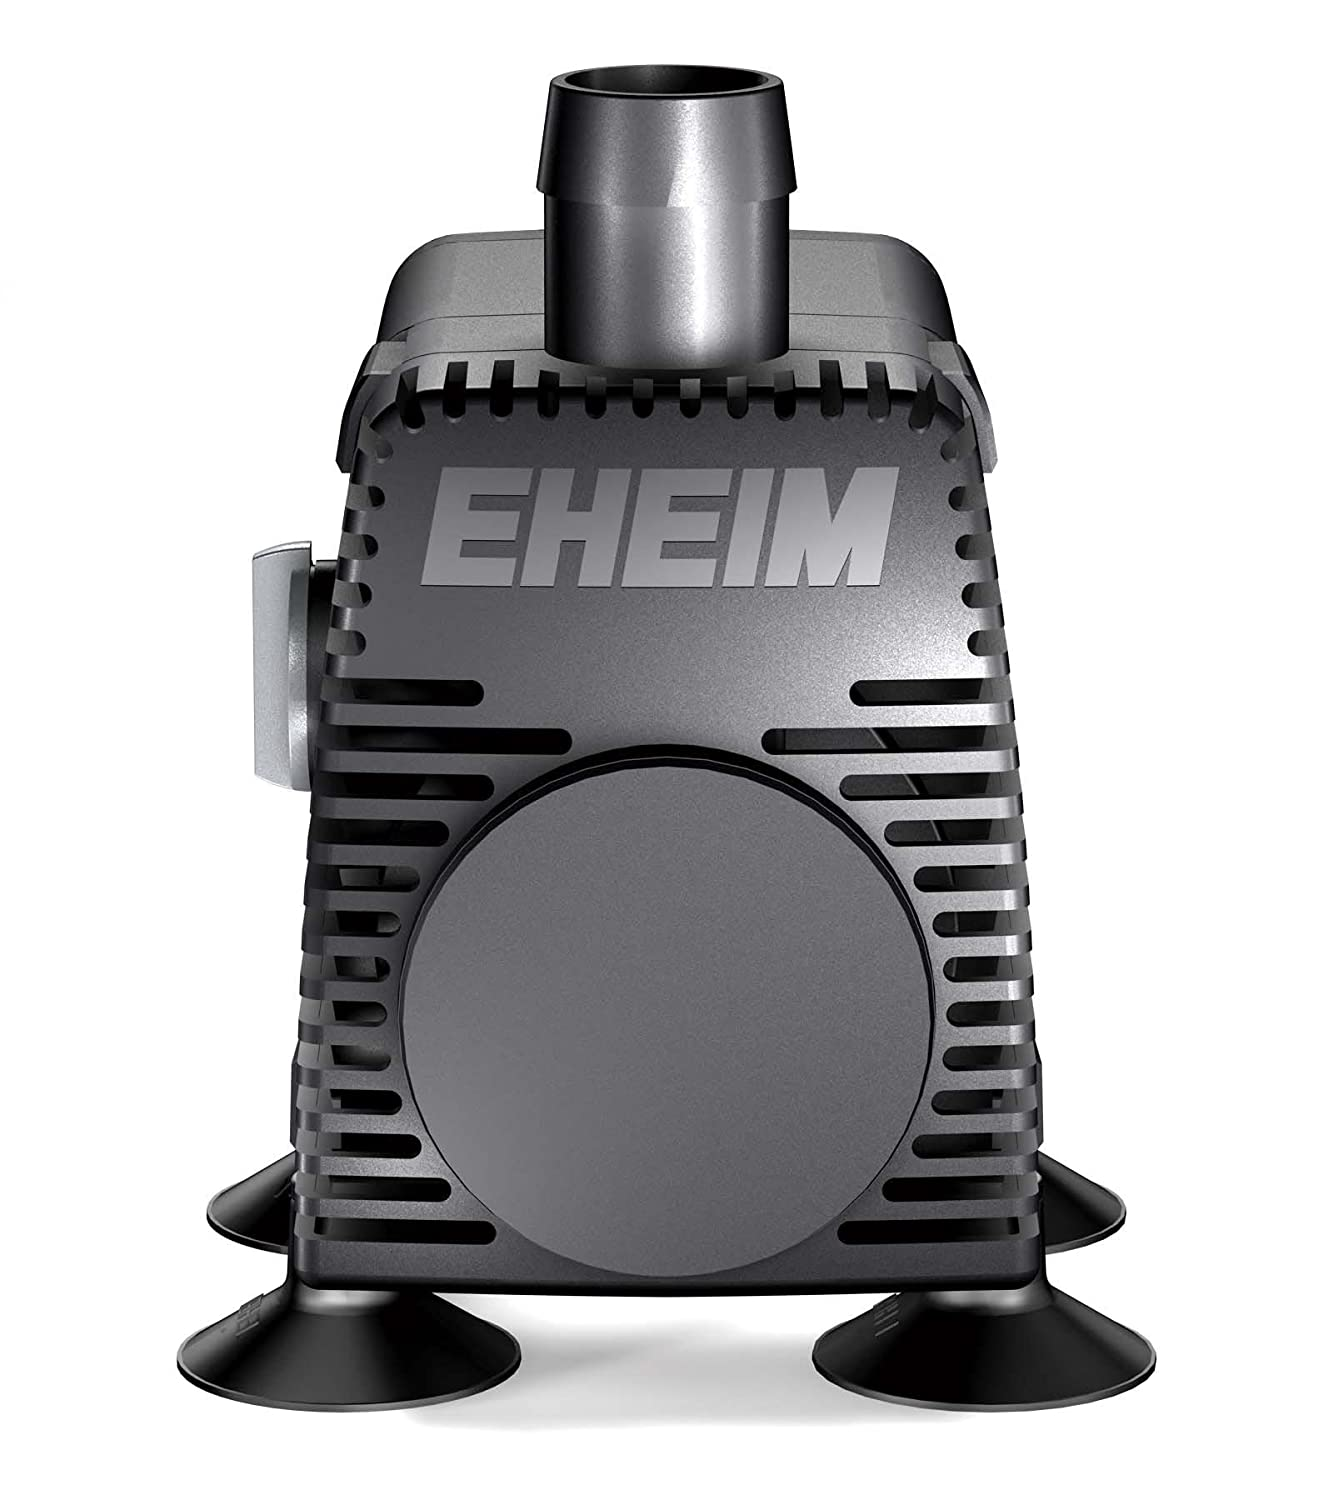 Eheim Compact+ Pump 5000 for up to 1320 US Gallons (5000L) 1102310